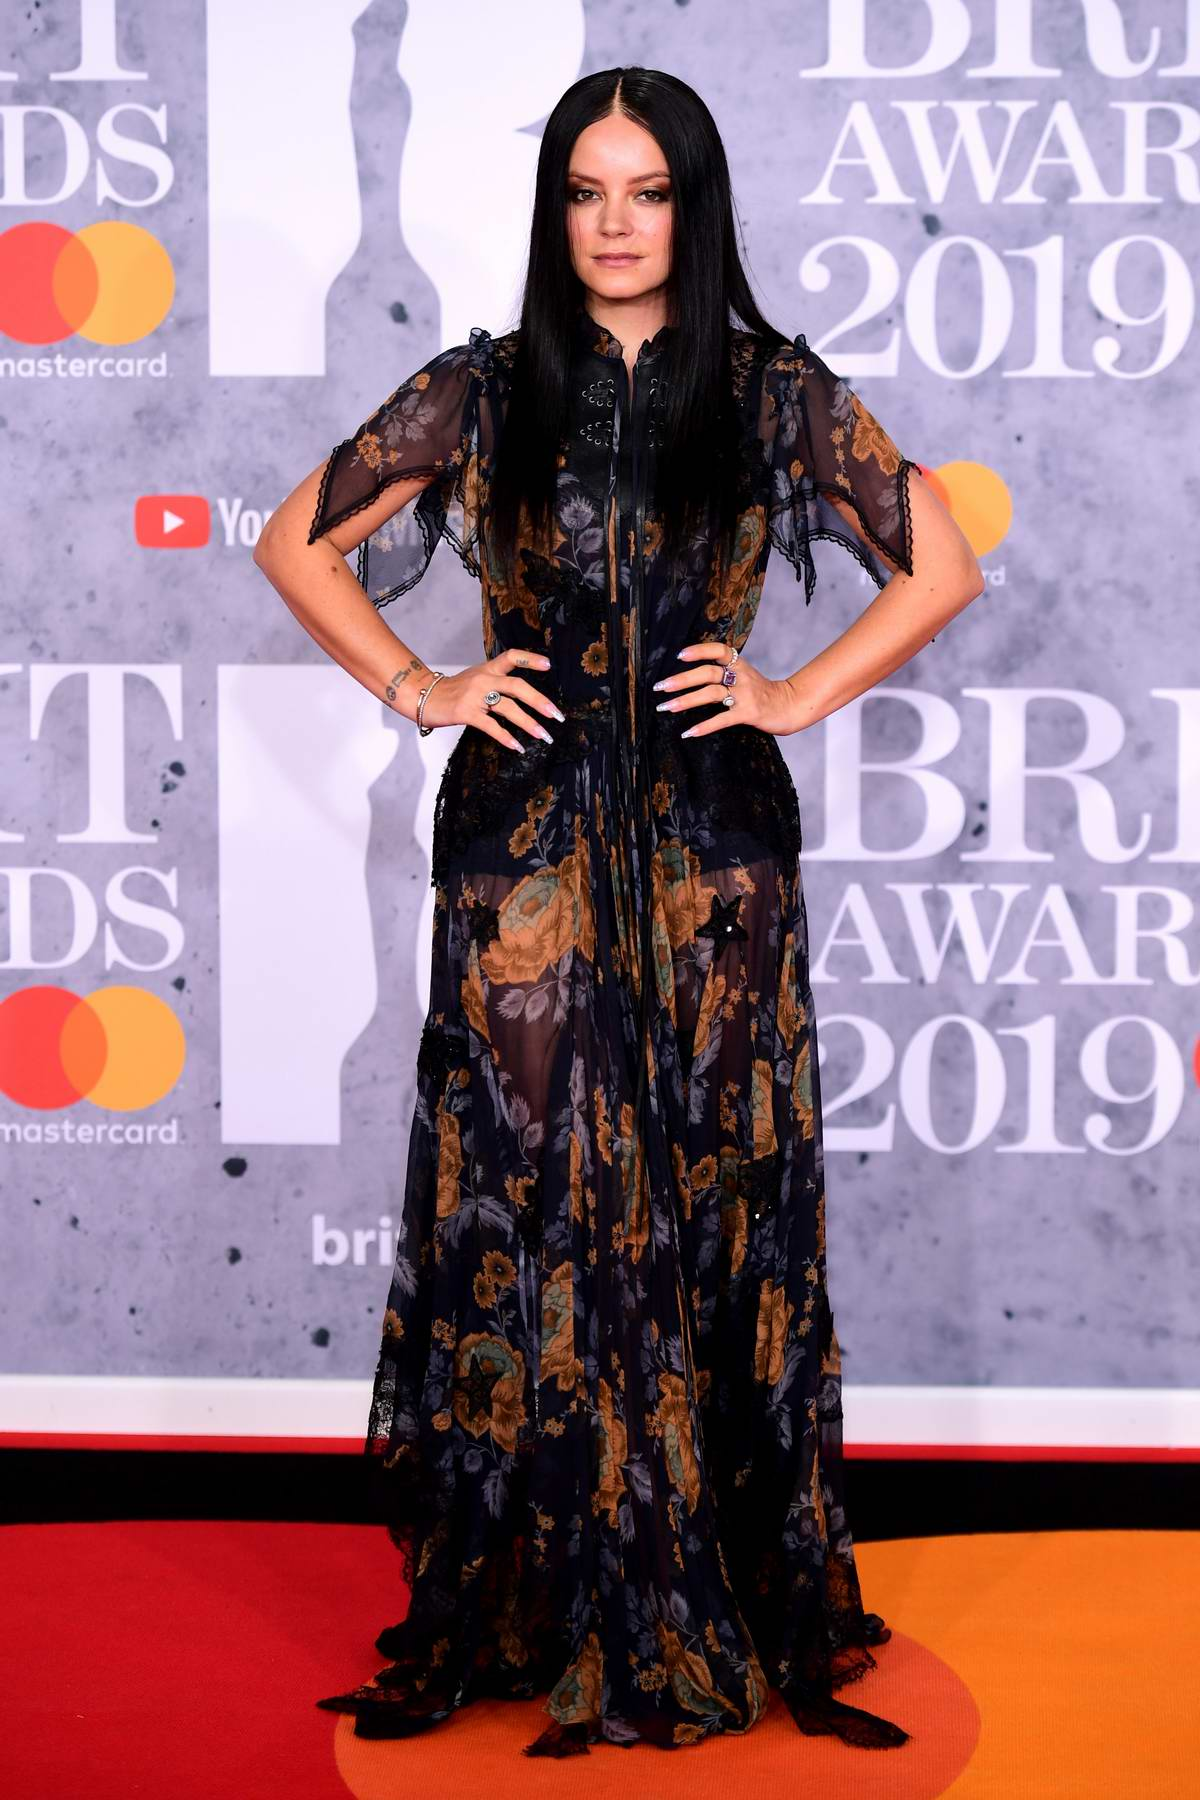 Lily Allen attends The BRIT Awards 2019 held at The O2 Arena in London, UK